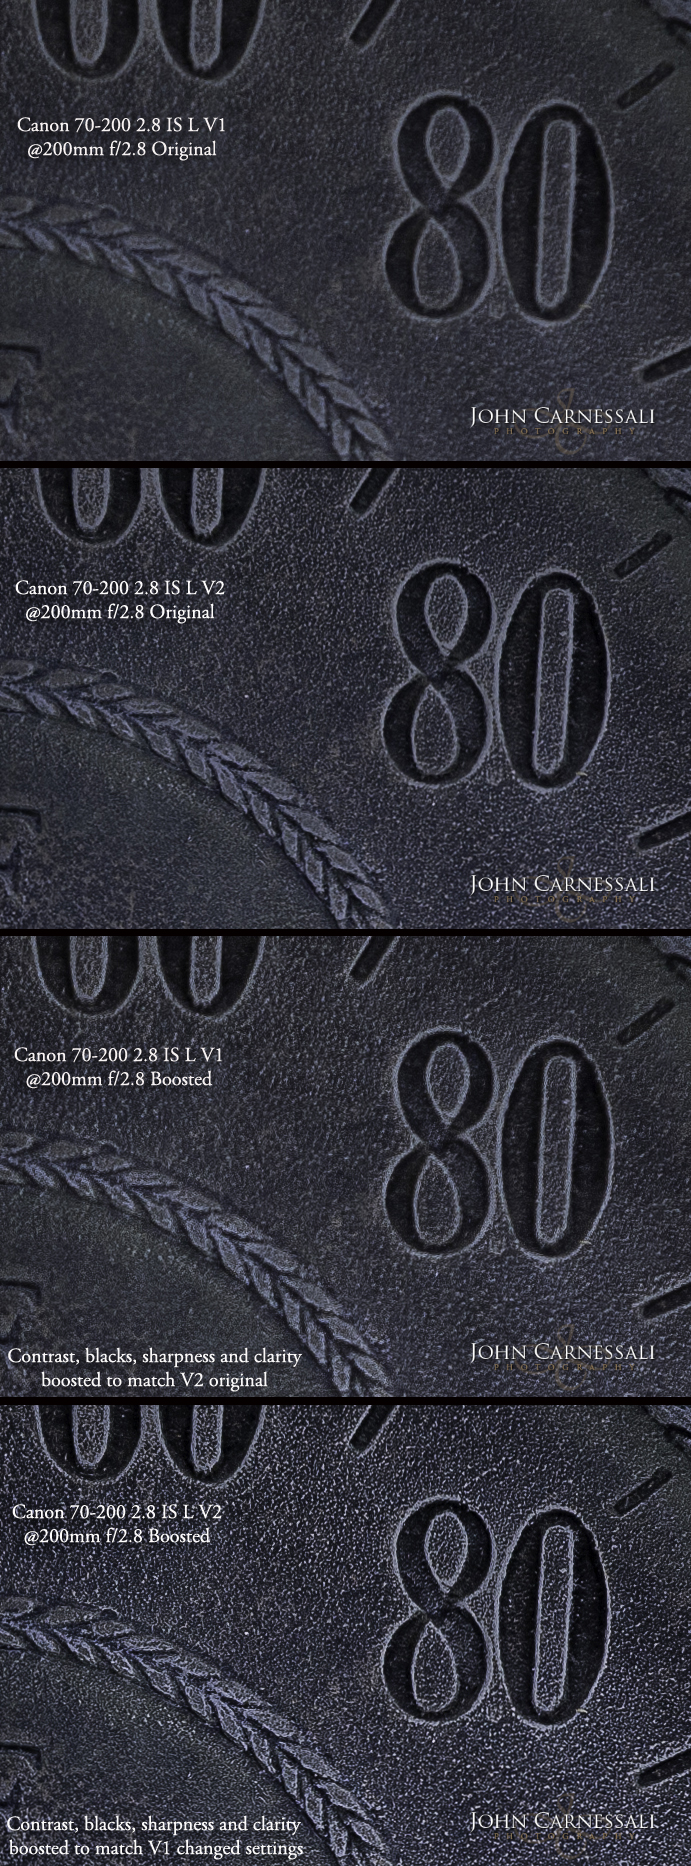 Original Canon 70-200 2.8 L I and II compared with increased sharpness, contrast, and clarity applied in Lightroom